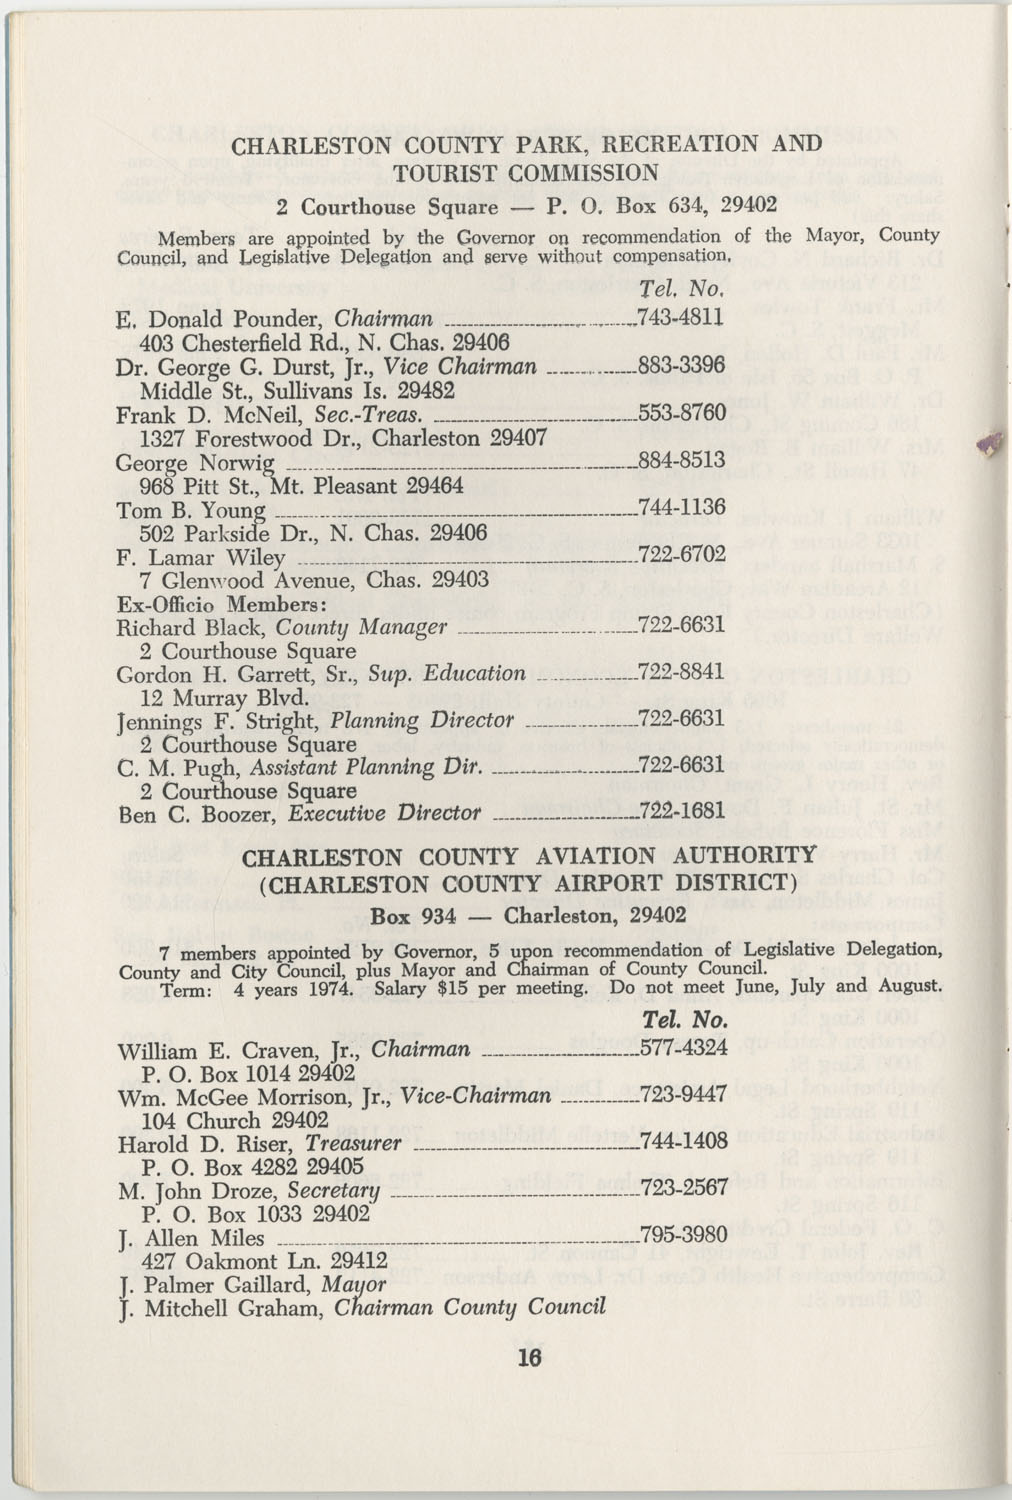 Directory of Public Officials, 1972-1973, Page 16